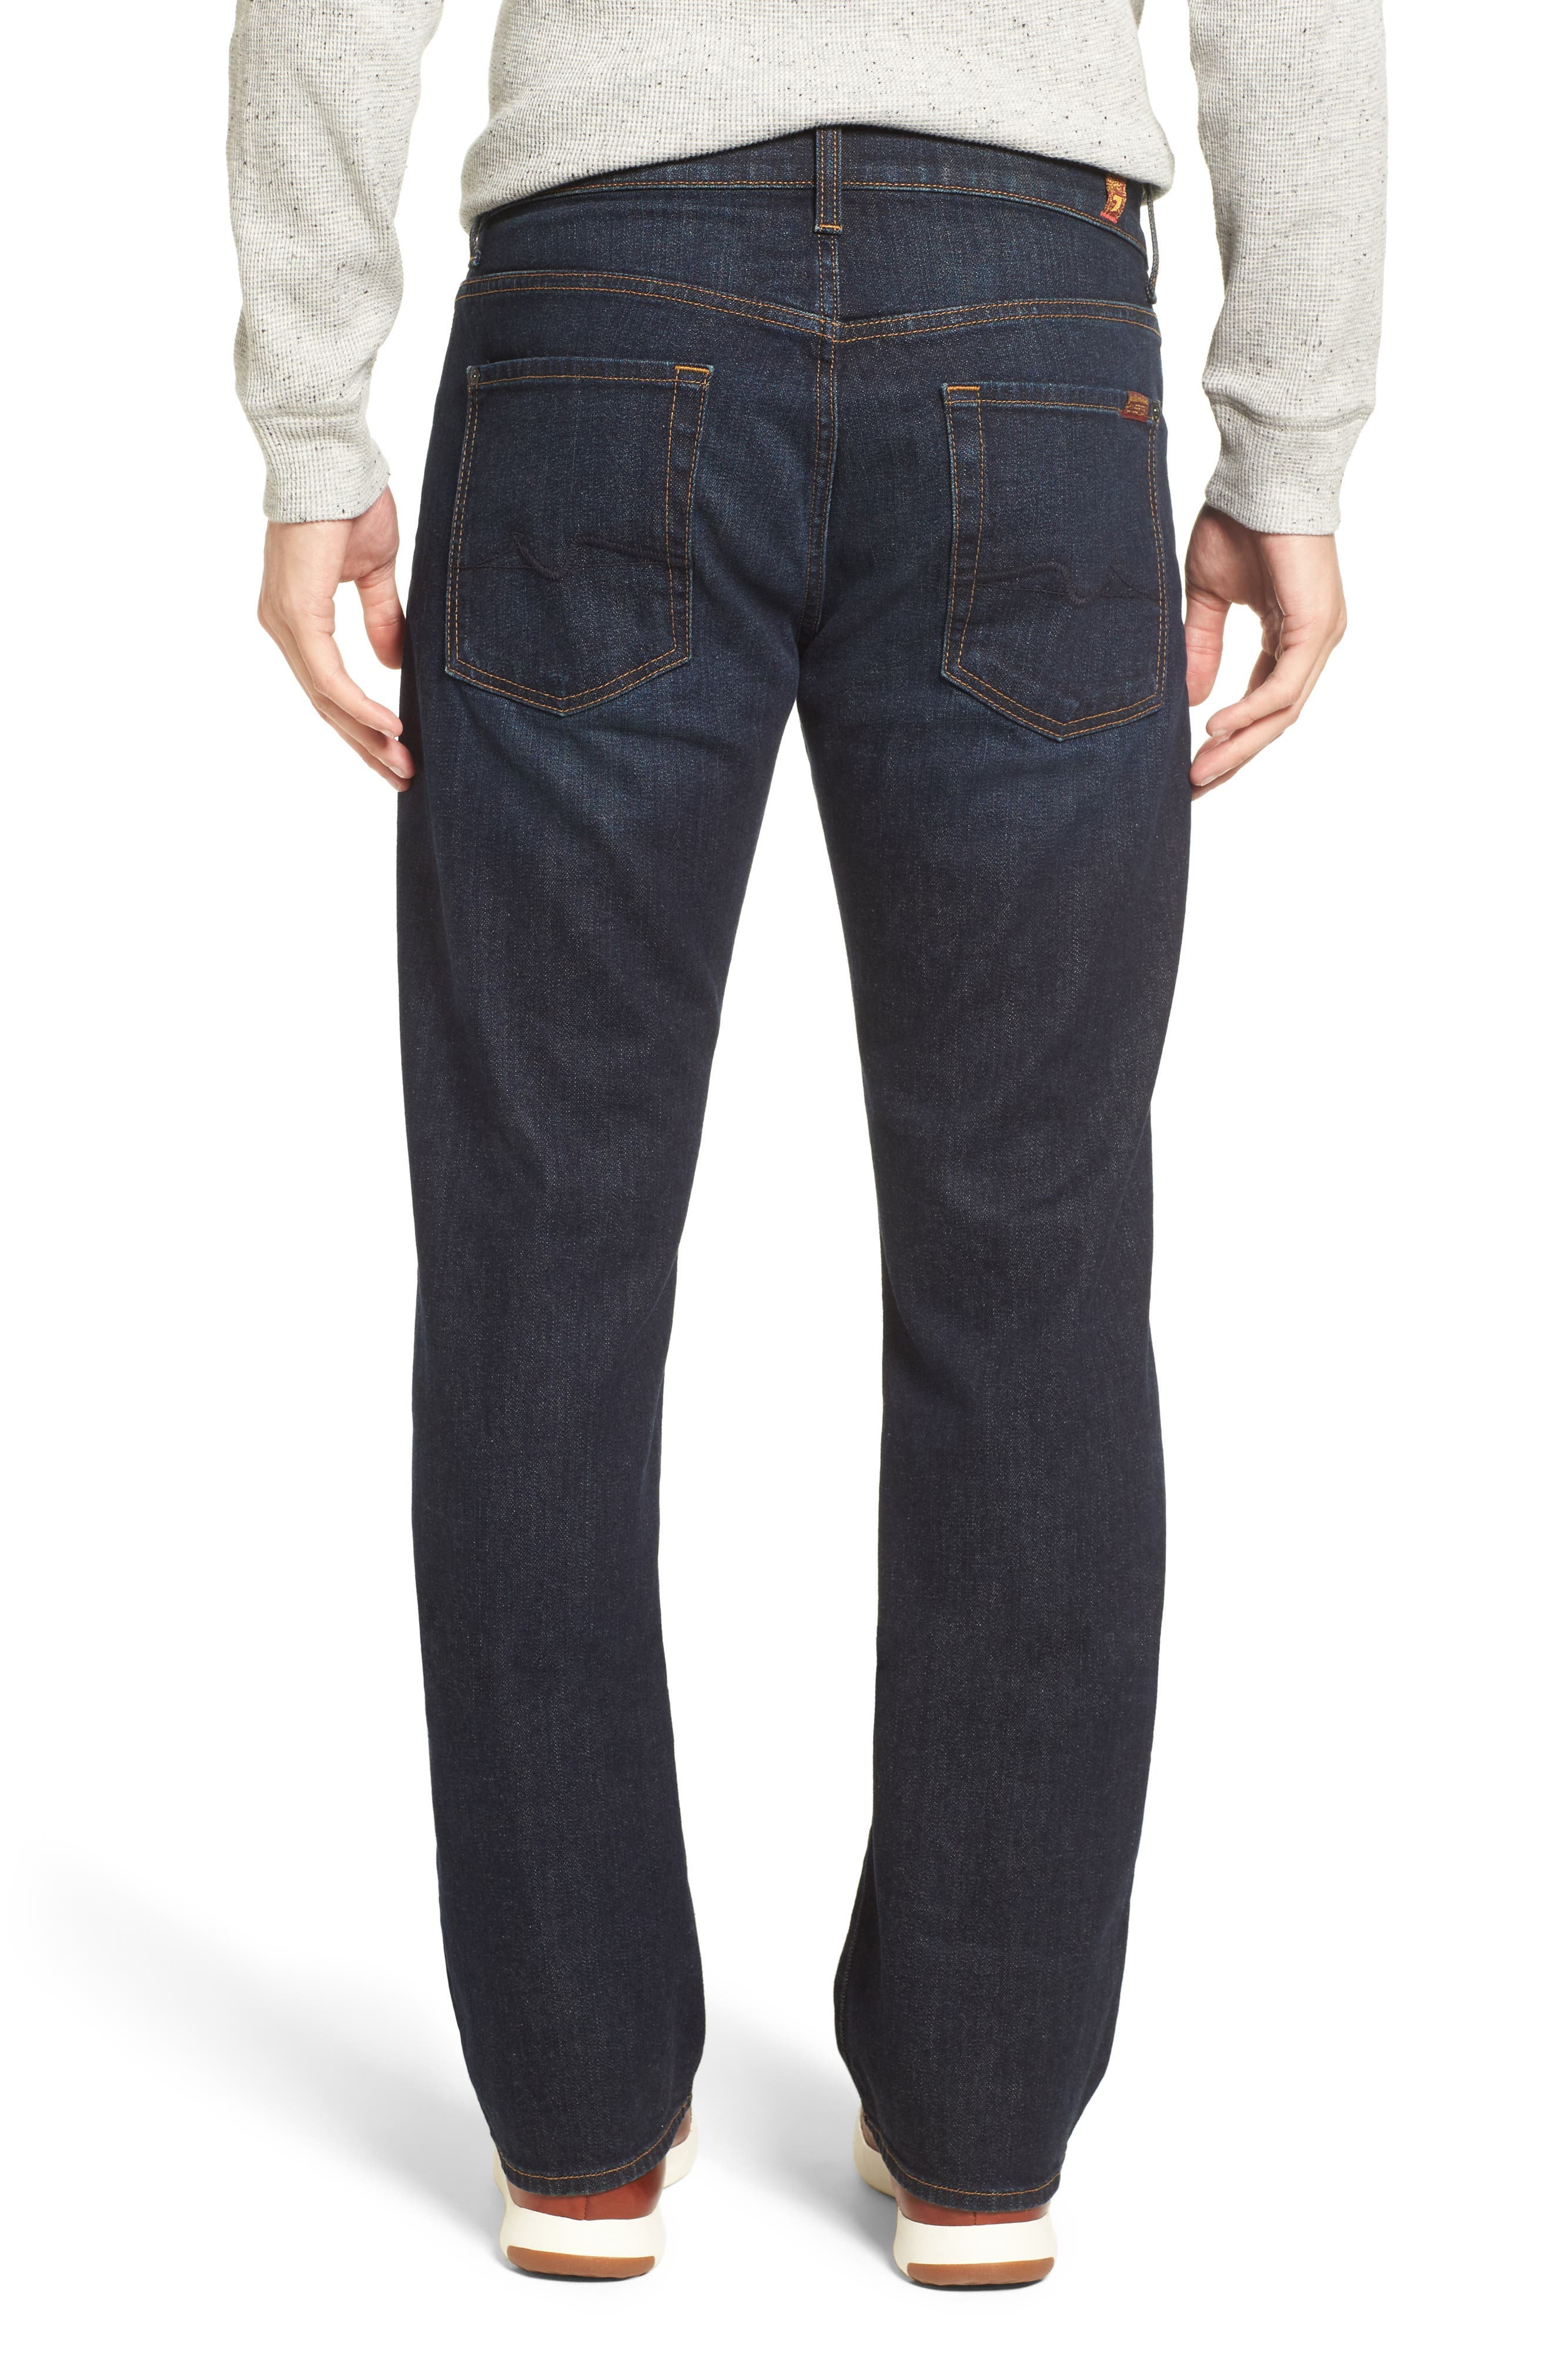 Austyn Relaxed Fit Jeans,                             Alternate thumbnail 2, color,                             402